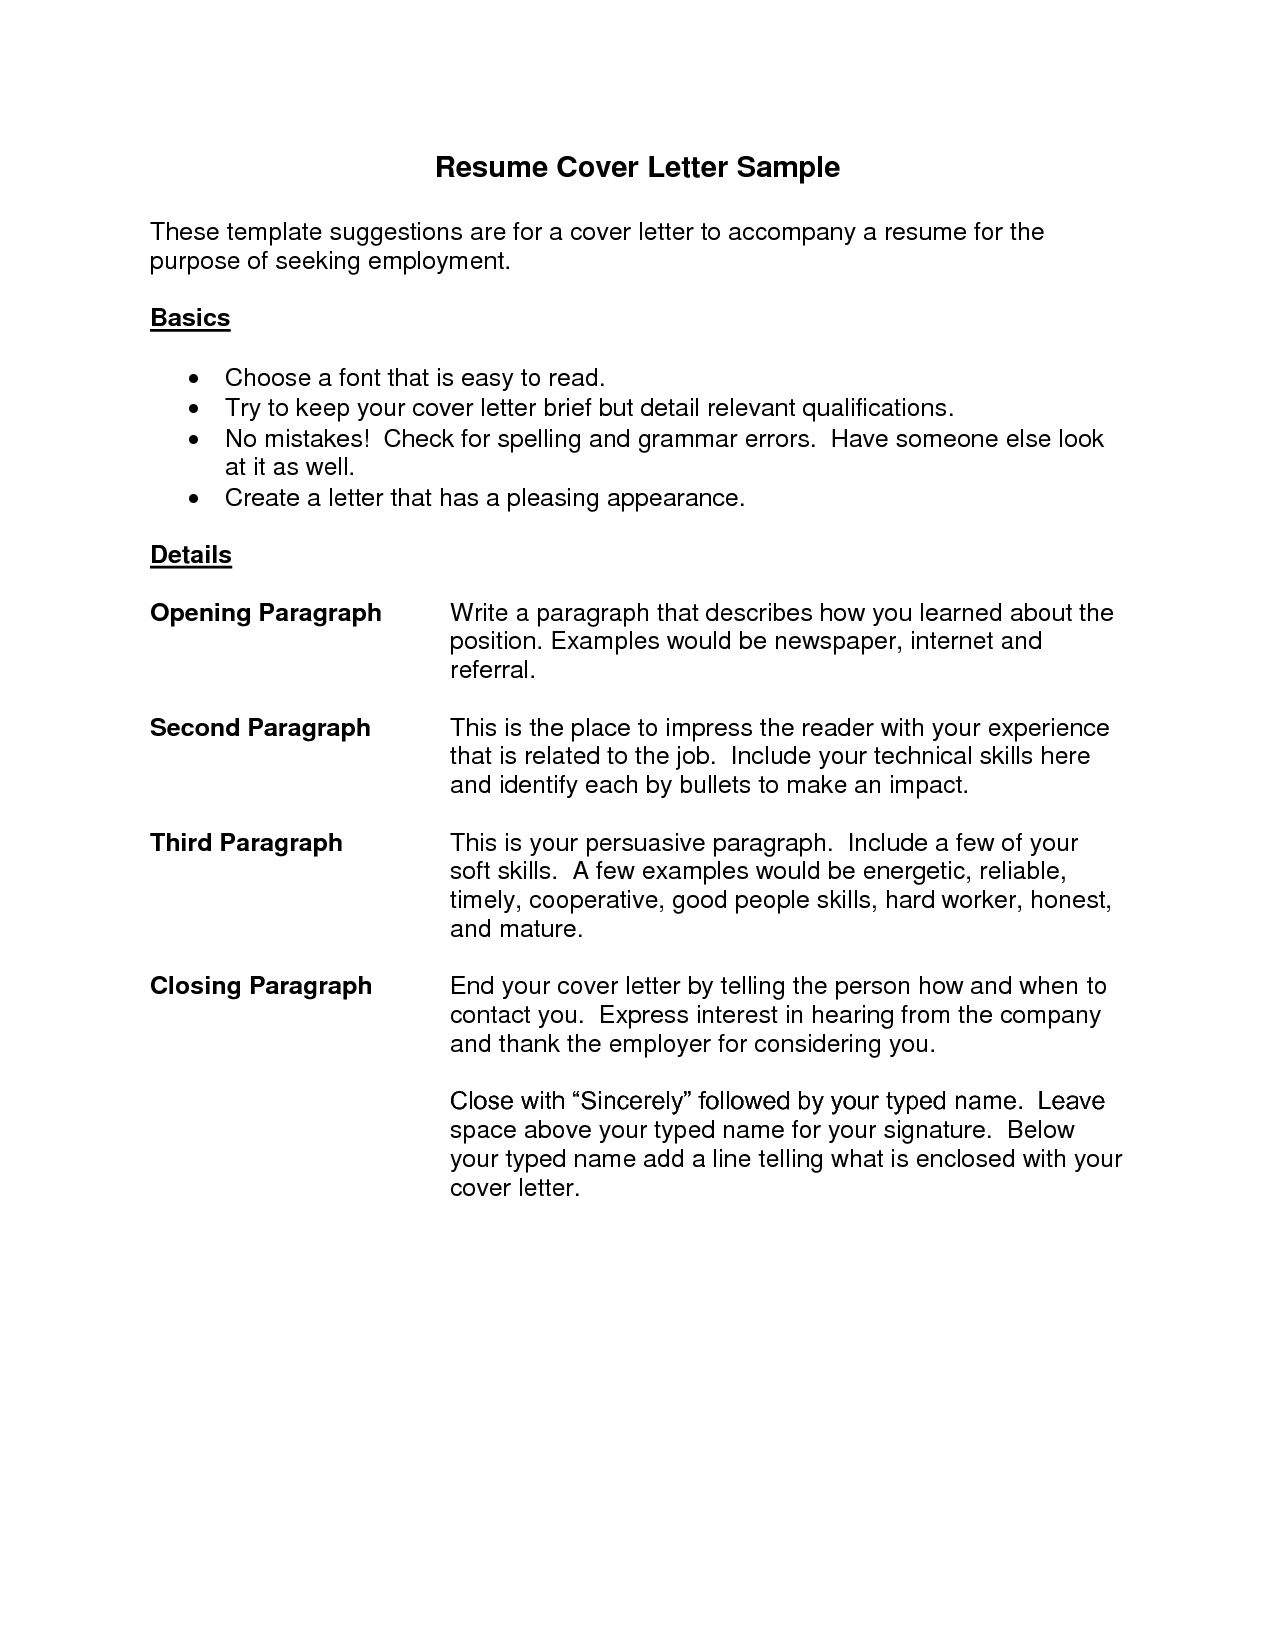 Resume Cover Sheet Template – Microsoft Office Cover Letter Templates